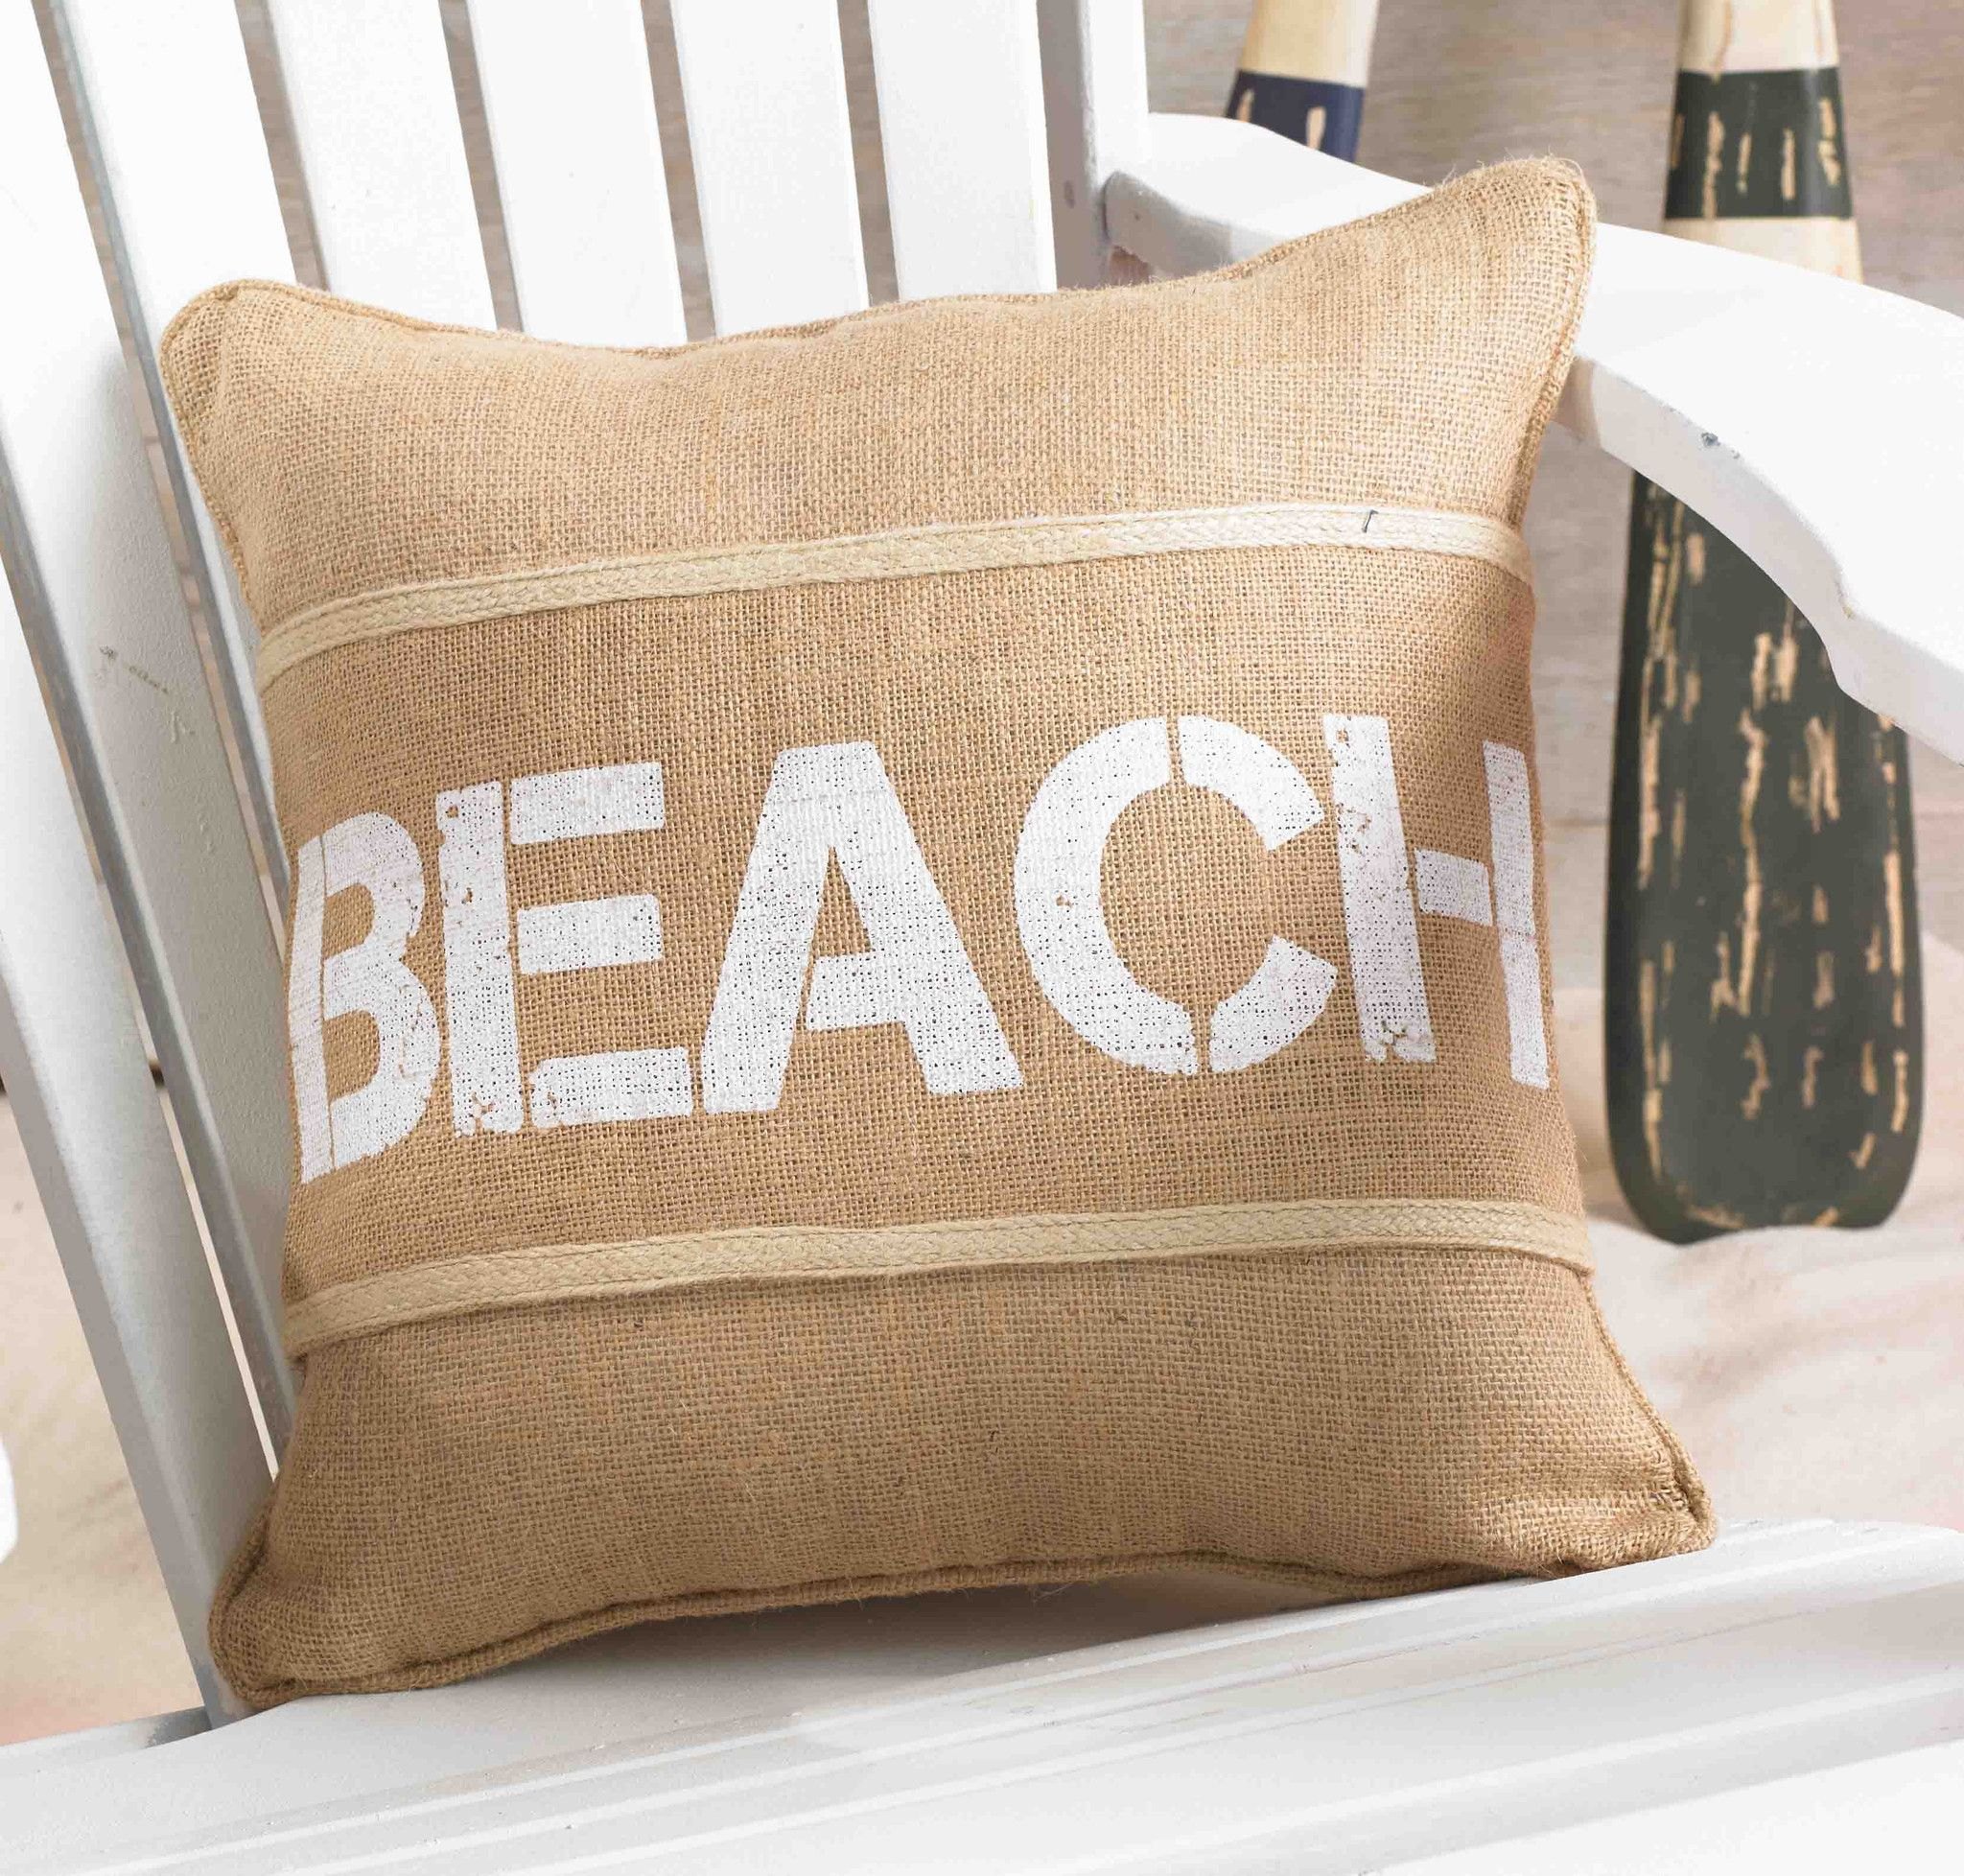 palm inspirational beach favorite covers a etsy banana elegant pillows shop pillow my cushion of from personal cushions tropical leaf